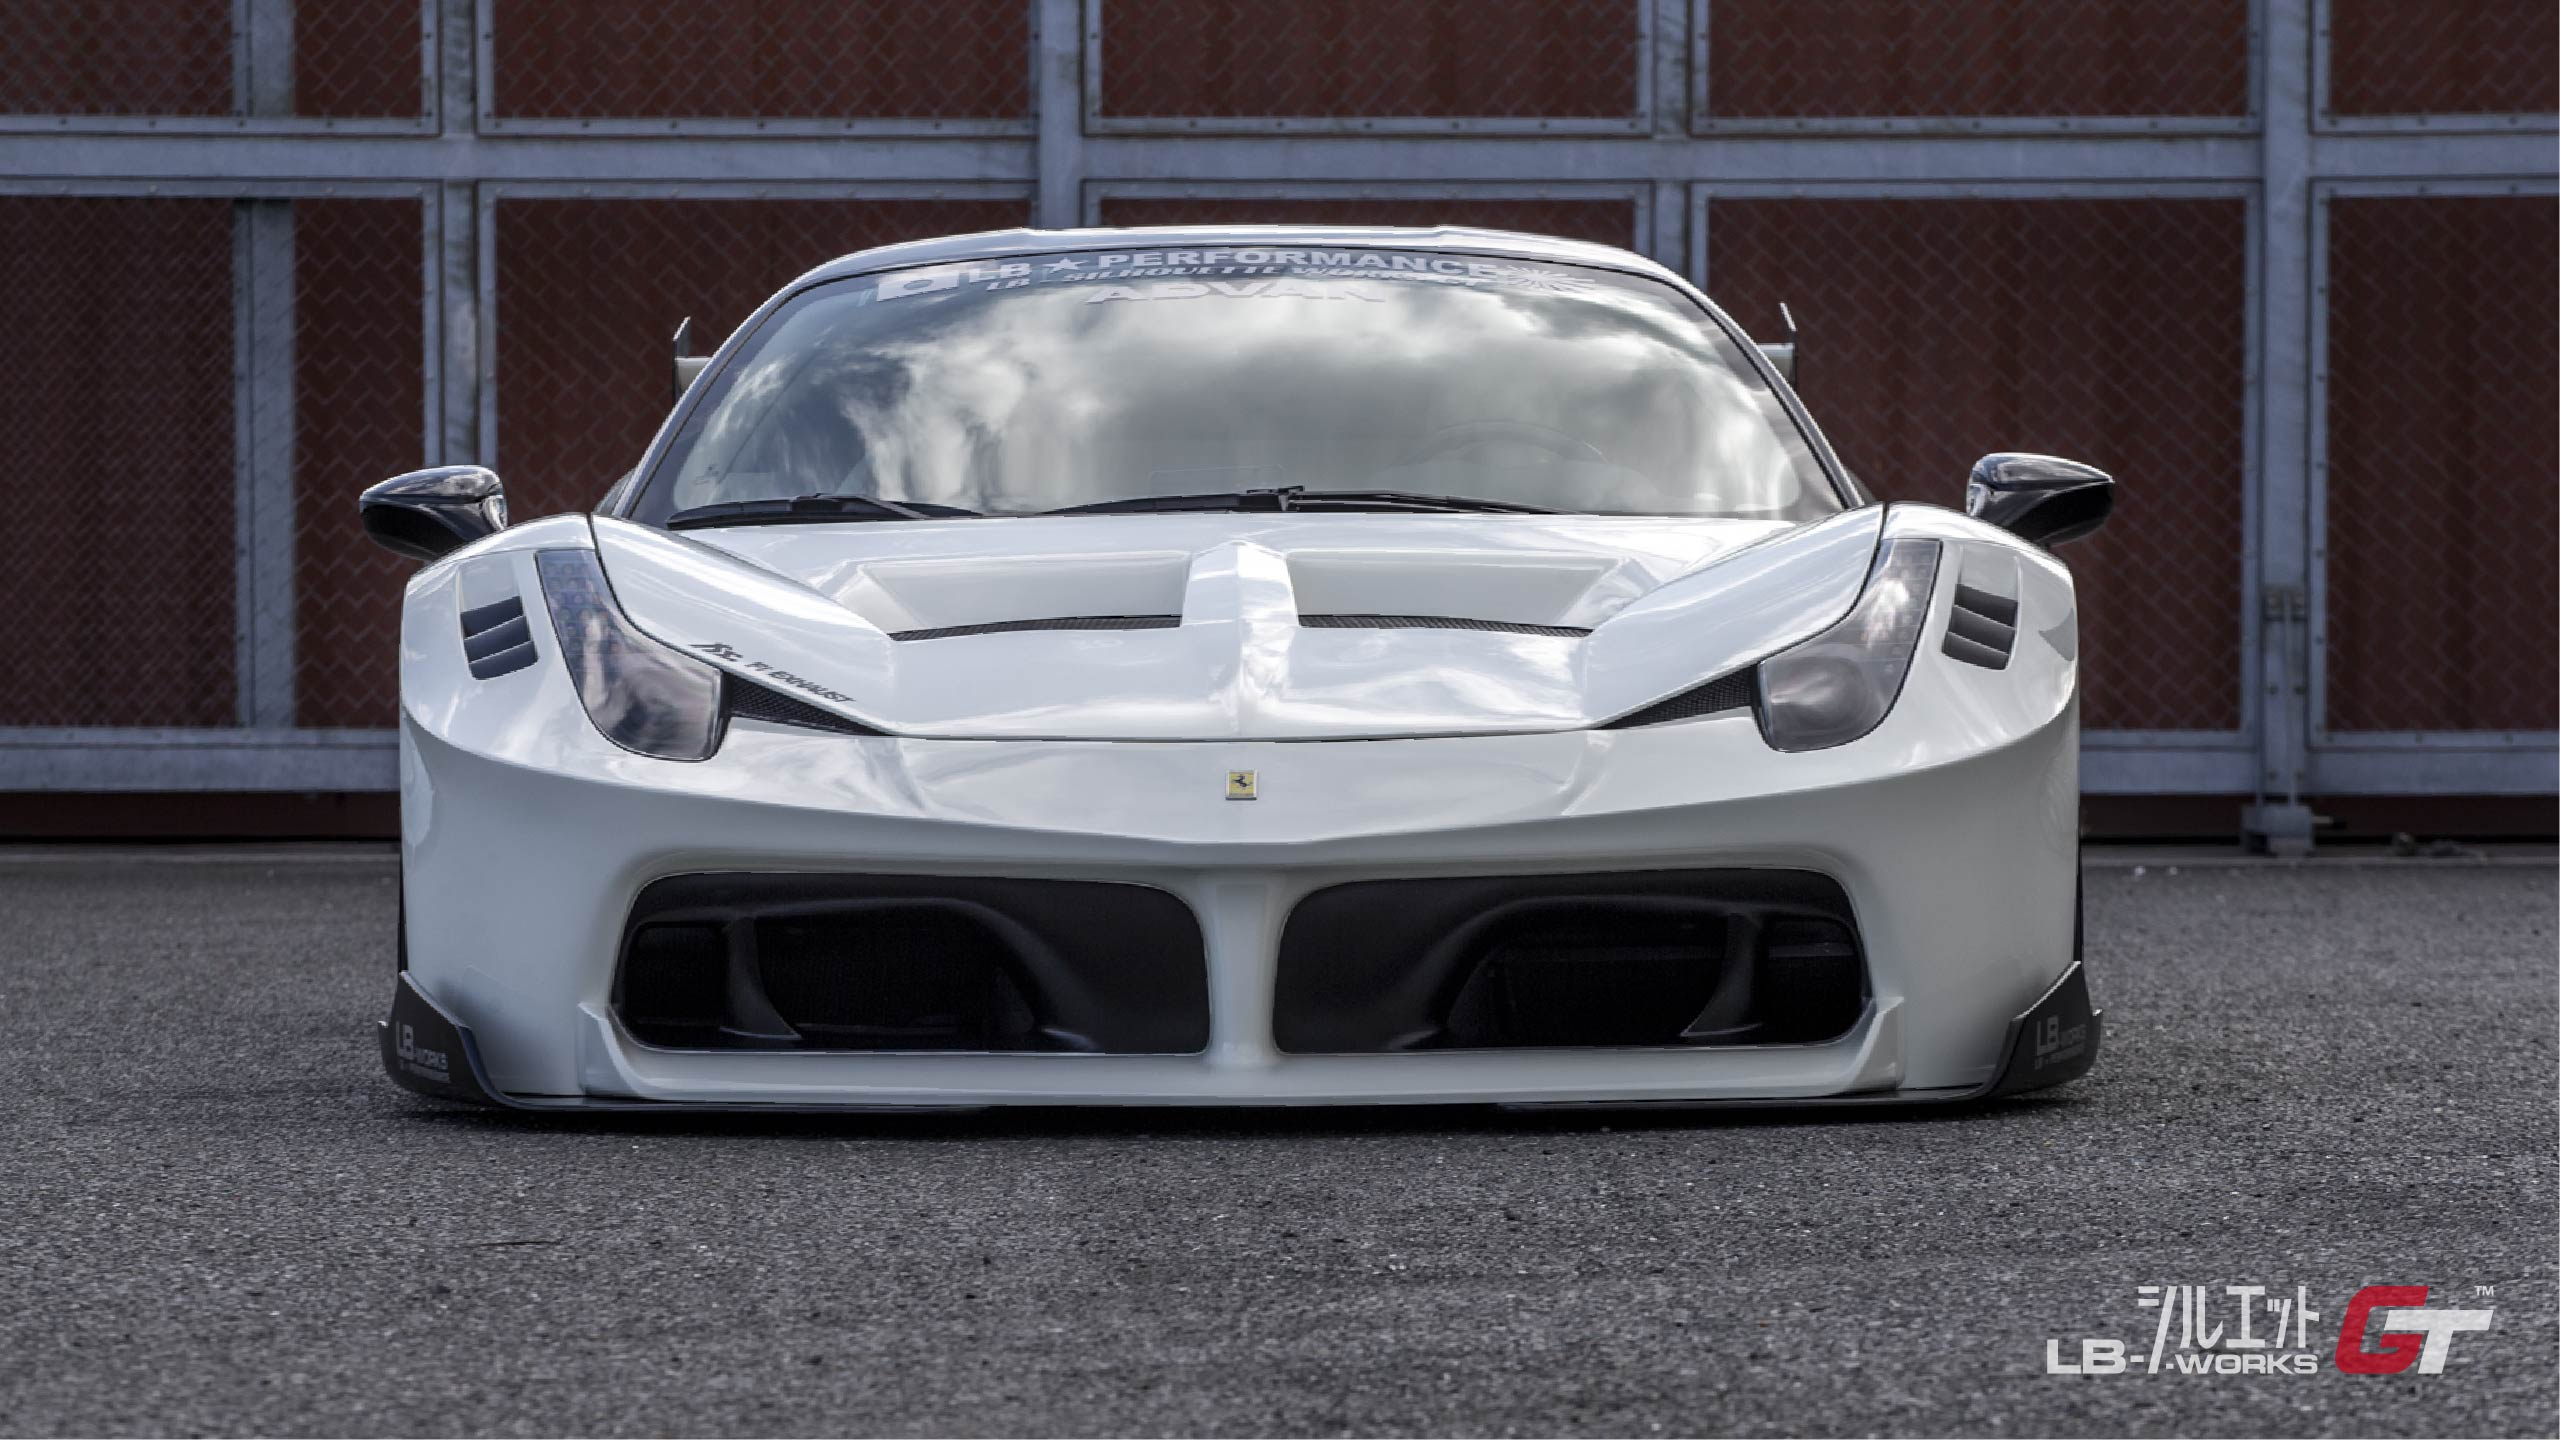 458gt_5-50 LB-Silhouette WORKS 458 GT